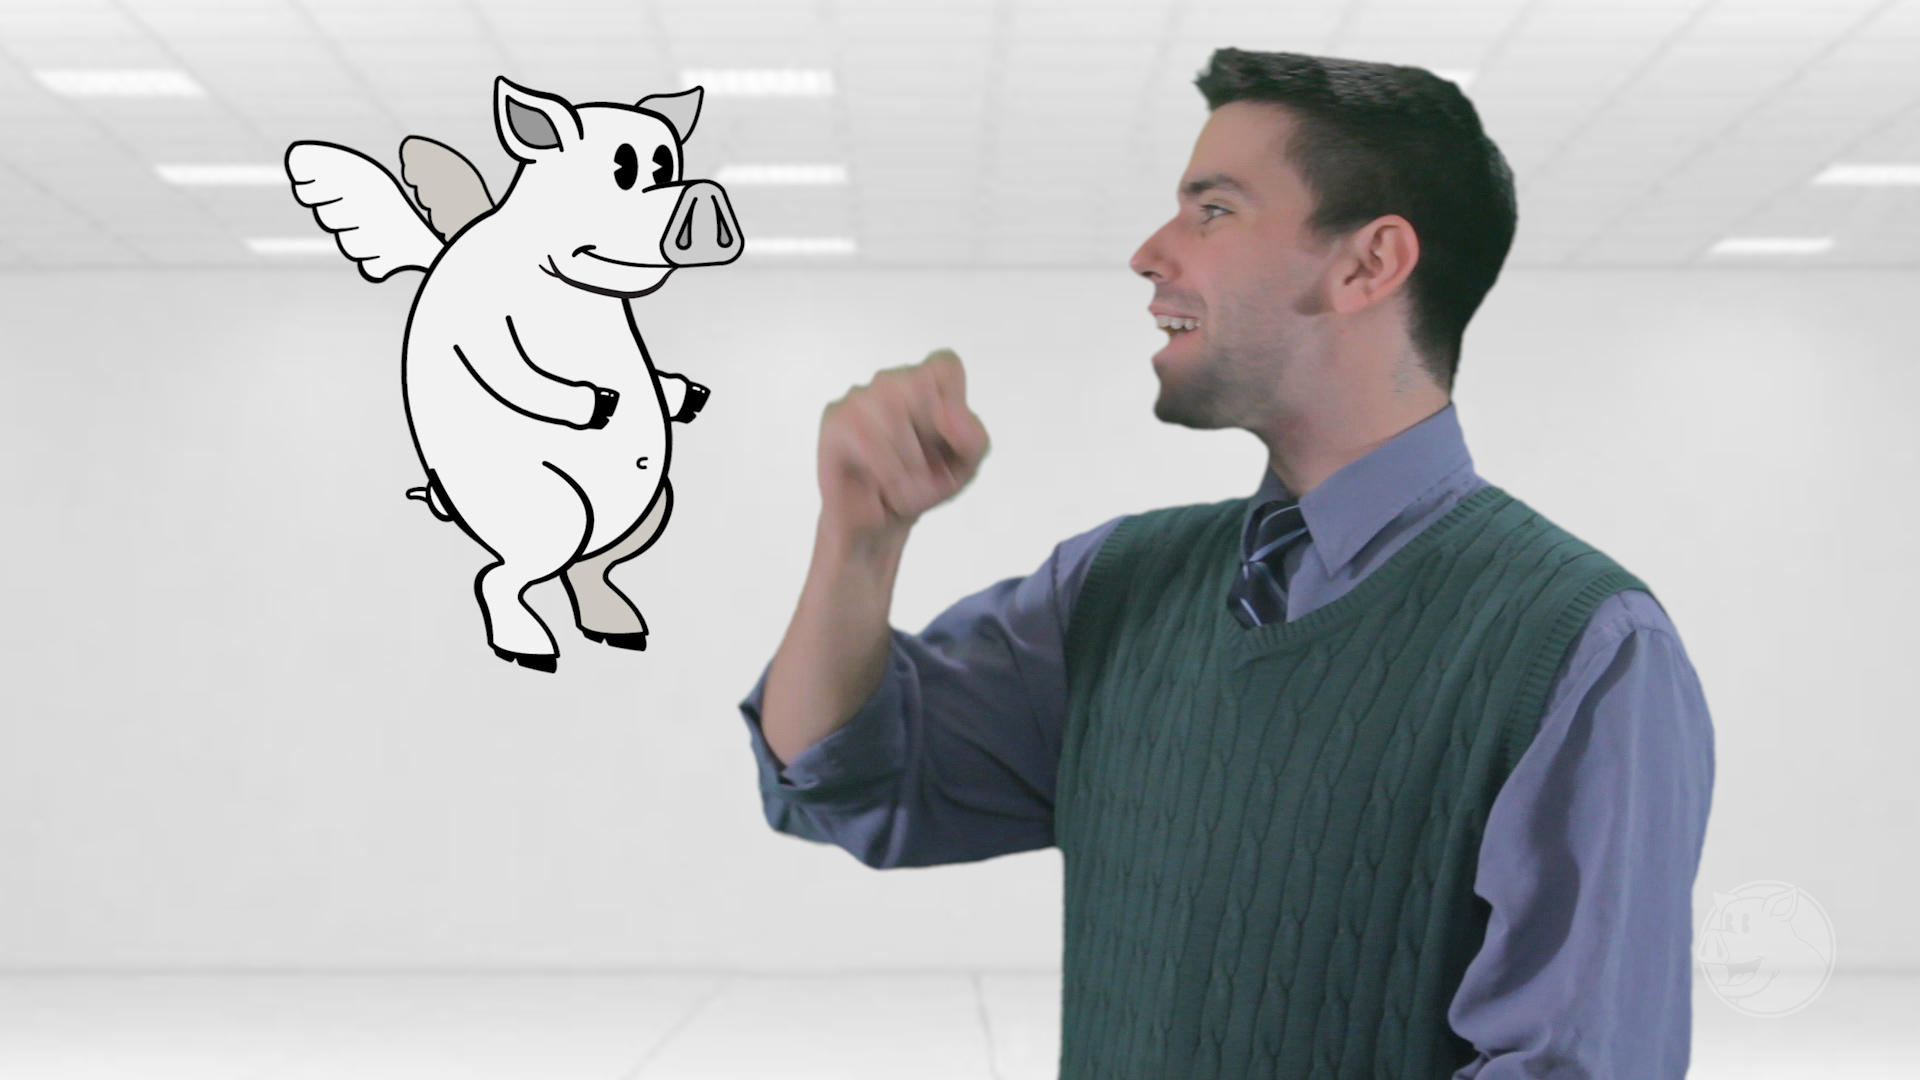 The illustrated and animated flying pig mascot for  Belly Bacon  is a figment of the narrator's imagination.